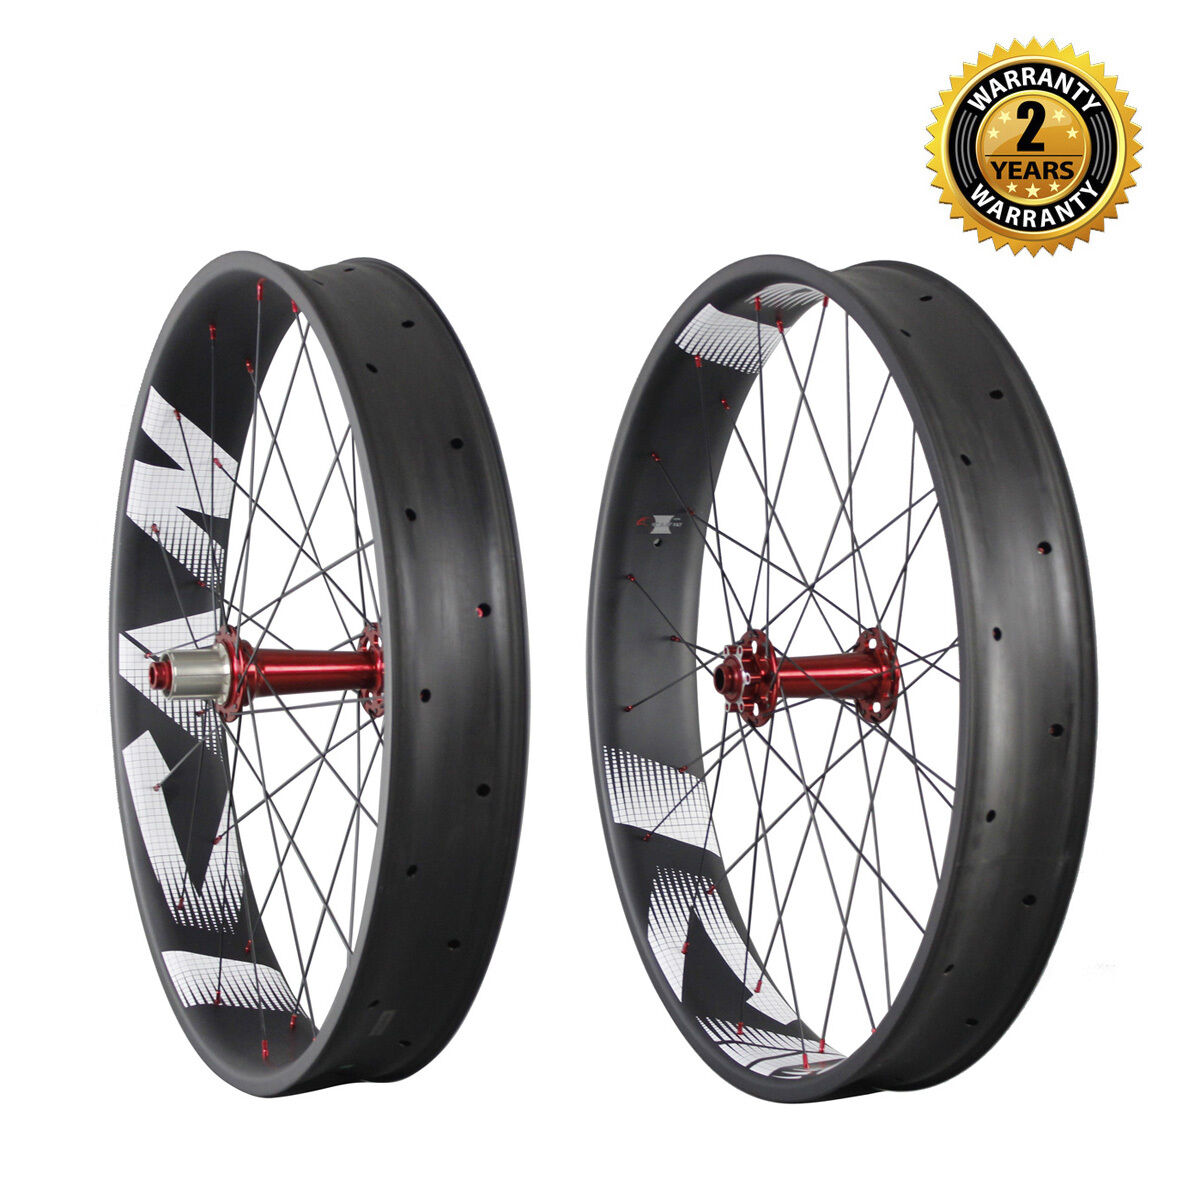 26 in Carbon Fiber Fat Bike Wheelset Clincher Tubeless Ready 32 32H 150 197mm